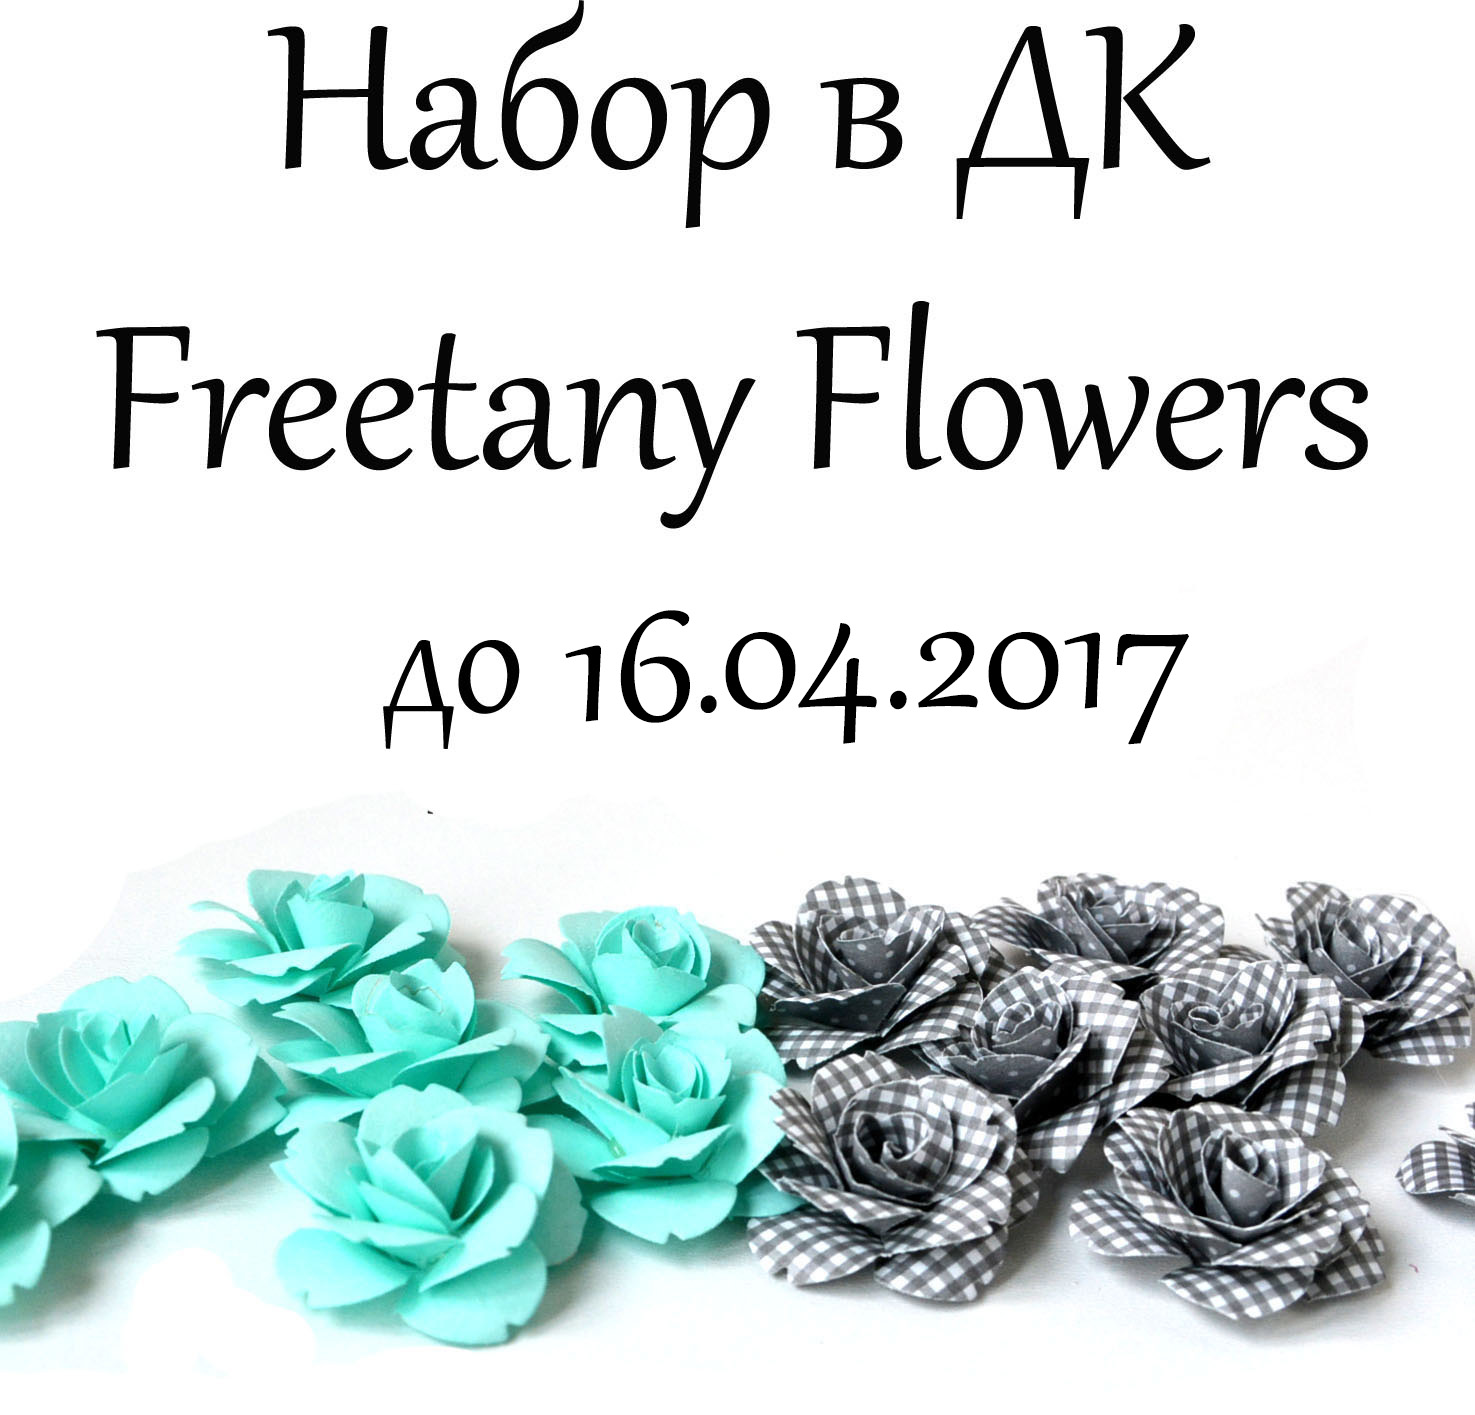 Freetany Flowers ищет таланты